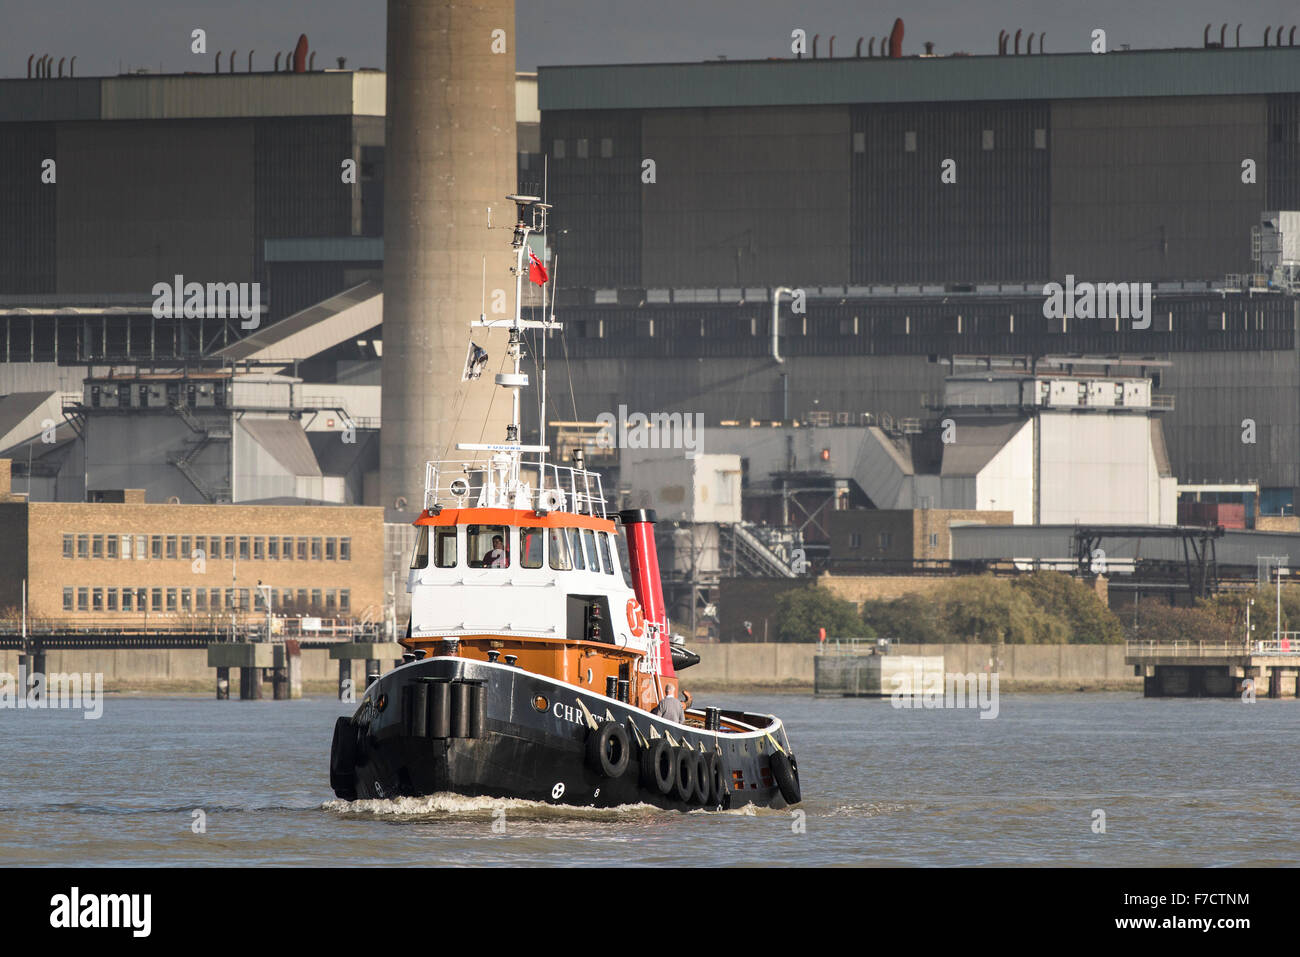 The tug Christine steaming across the River Thames. - Stock Image